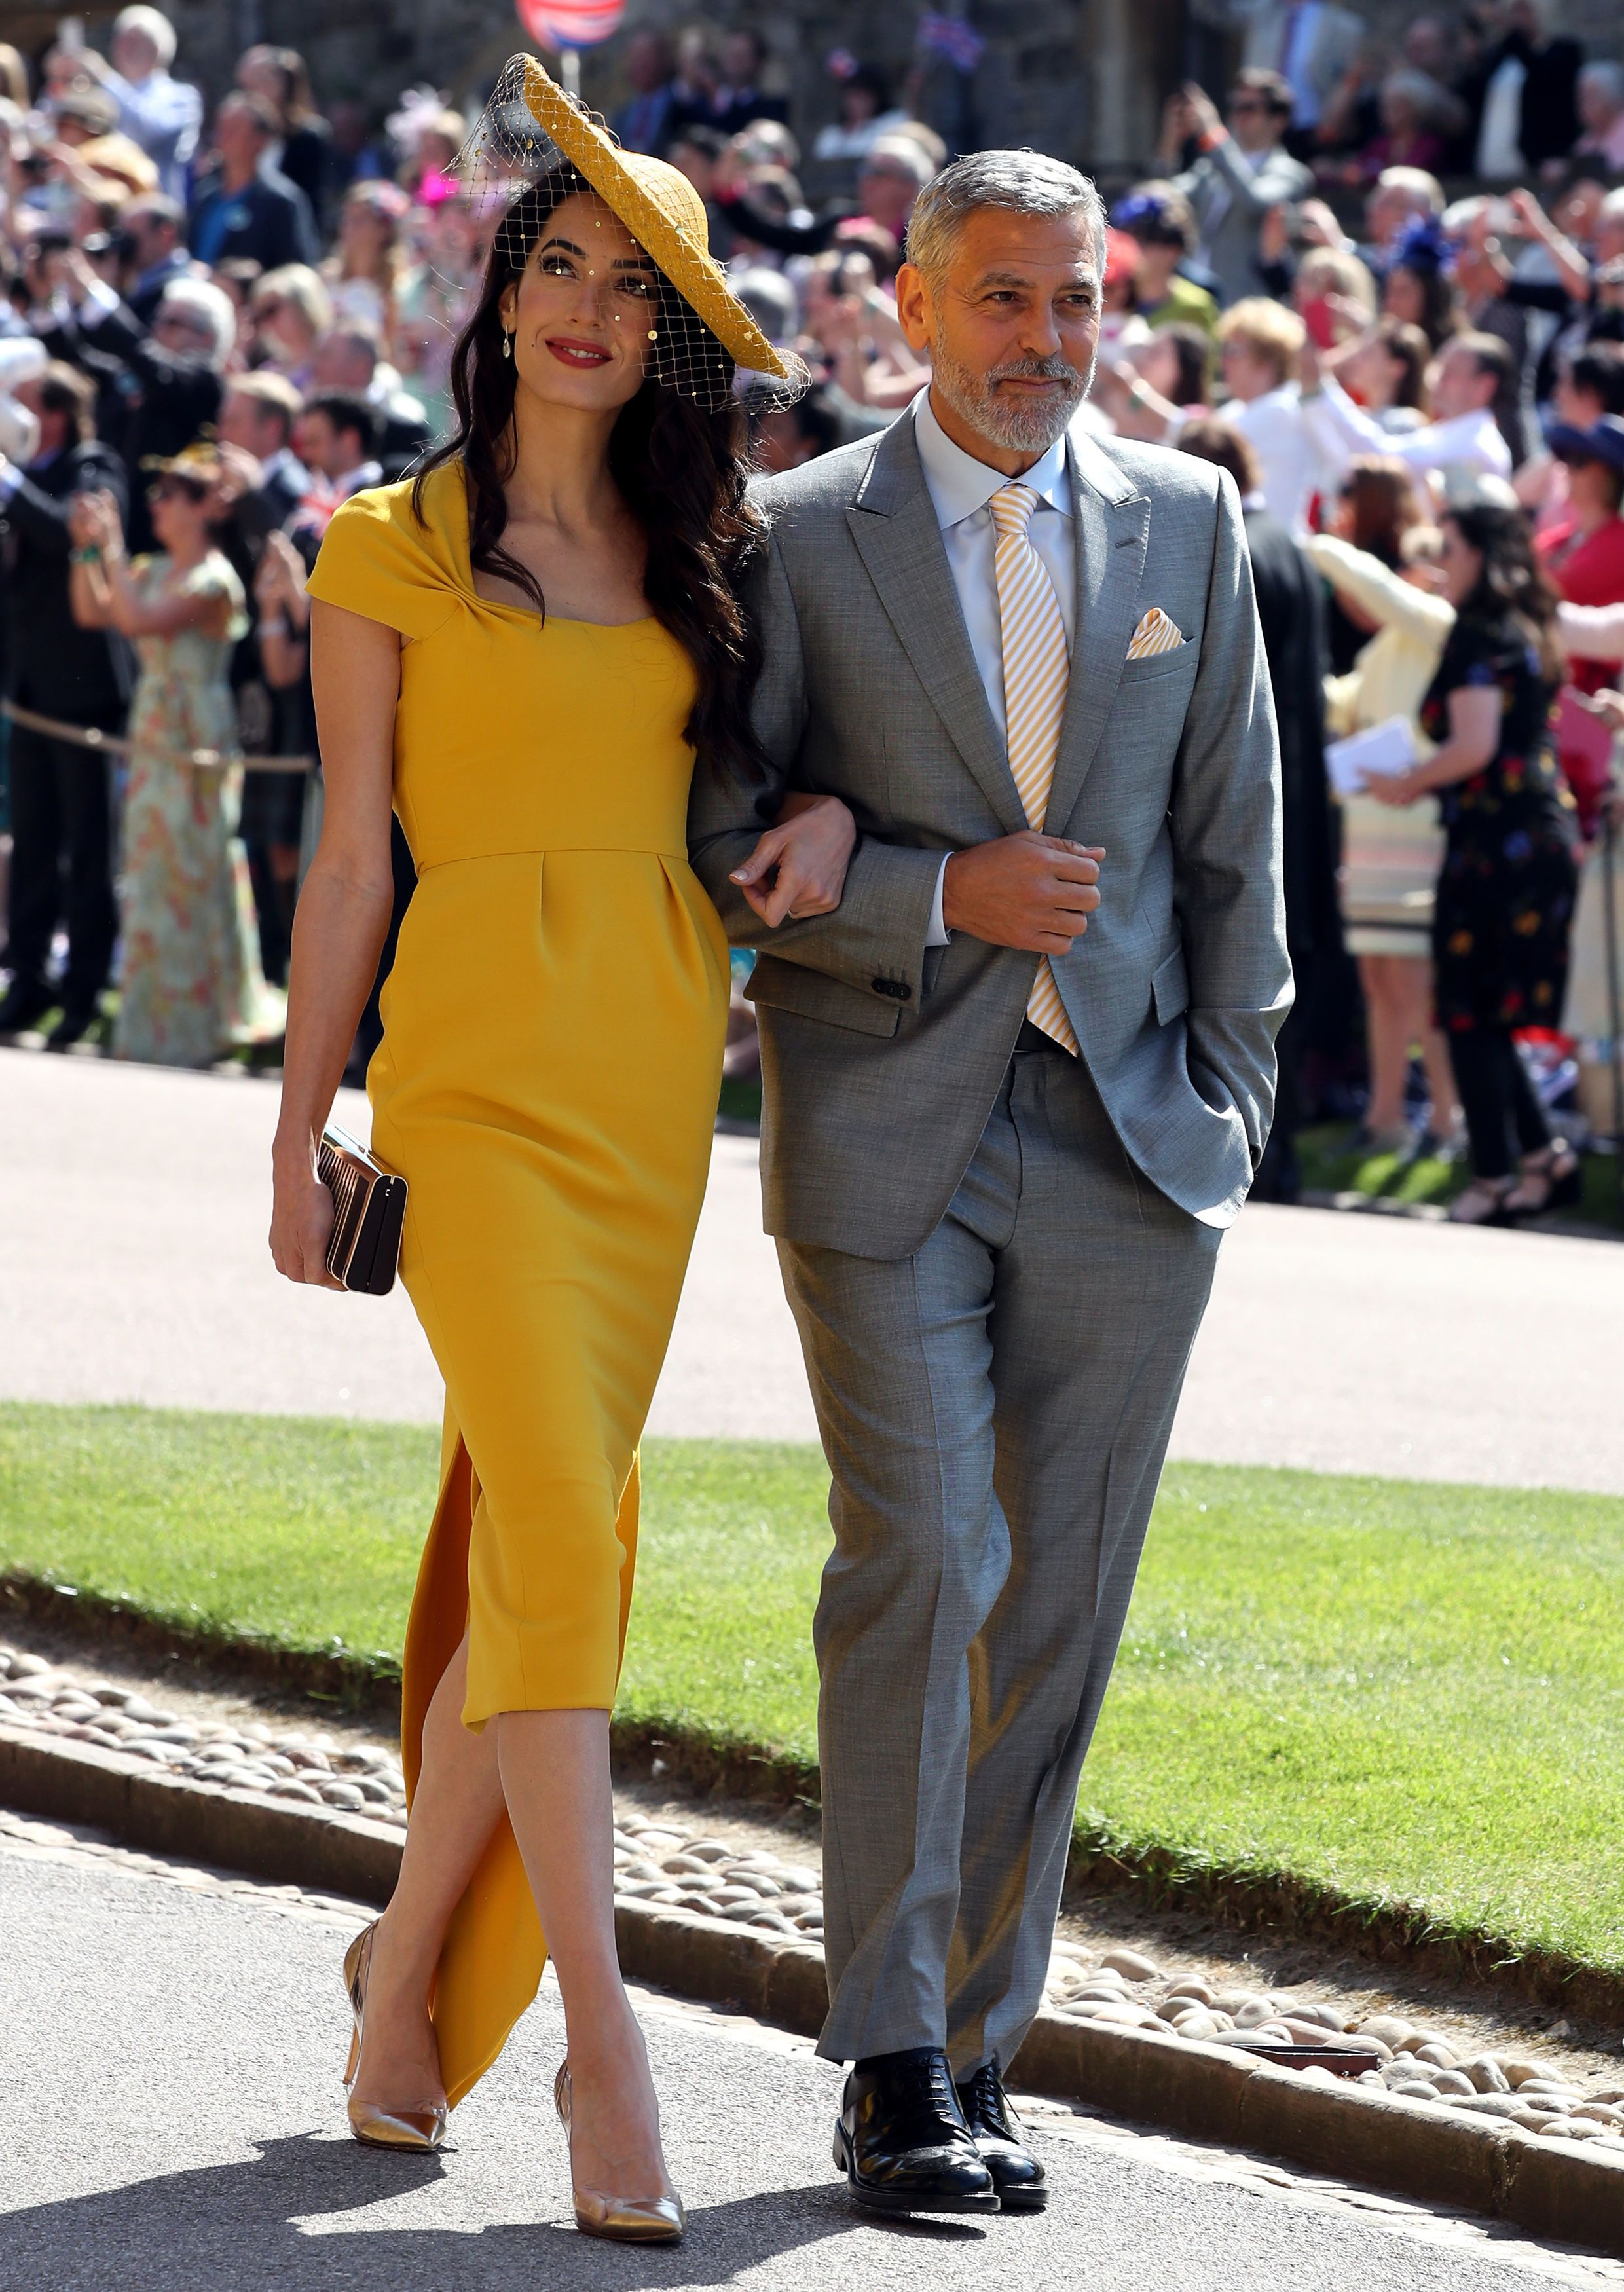 8b3eef0933f2 Amal Clooney s Custom Yellow Royal Wedding Dress Is Now Available to Buy